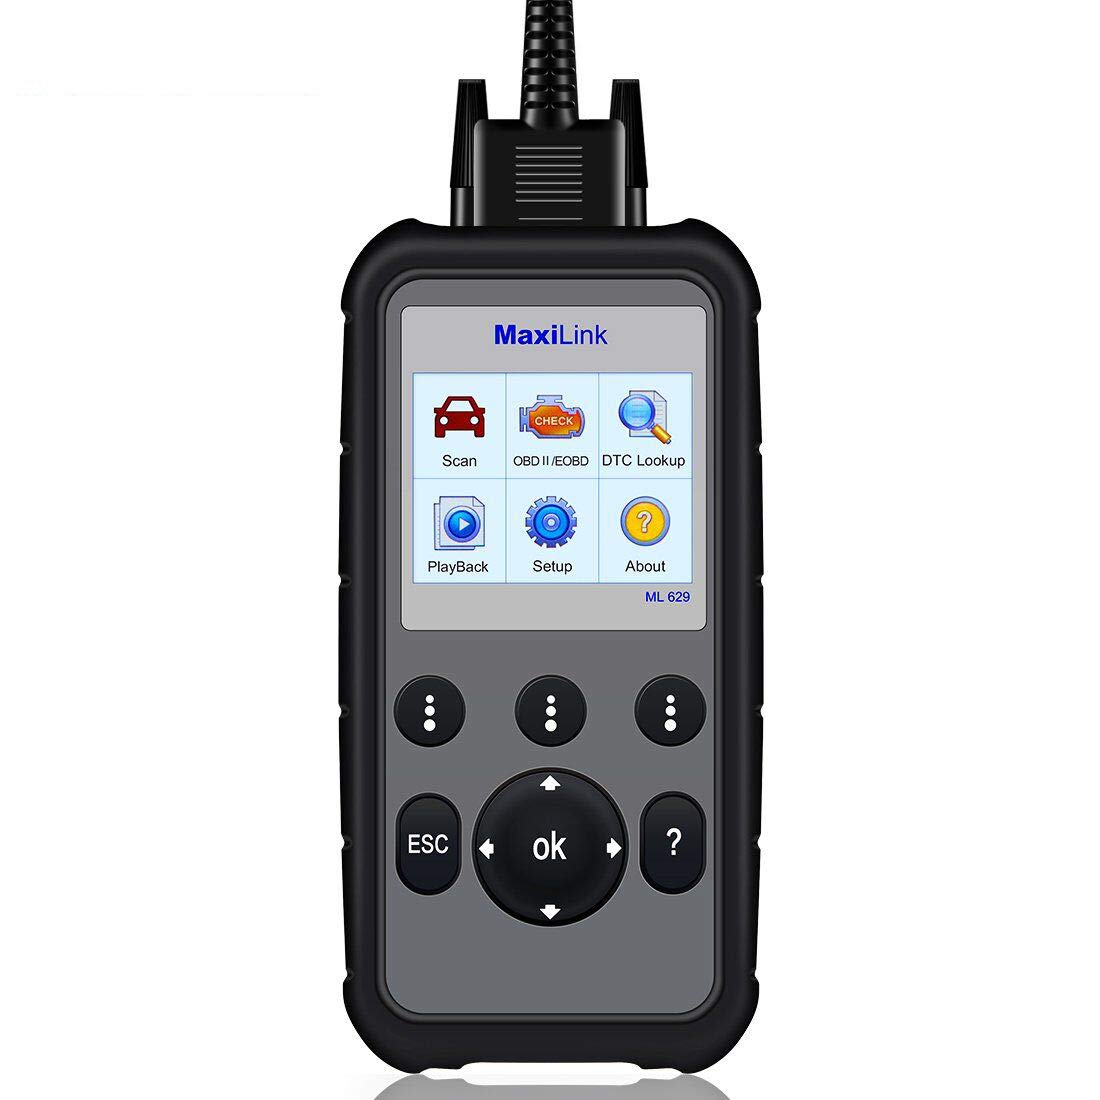 Autel MaxiLink ML629 CAN OBD2 Scanner Code Reader +ABS/SRS/Engine/Transmission Diagnostic Scan Tool, Turns Off Engine Light (MIL) and ABS/SRS Warning Lights, Upgraded Version of ML619 Scan Tool by Autel (Image #1)